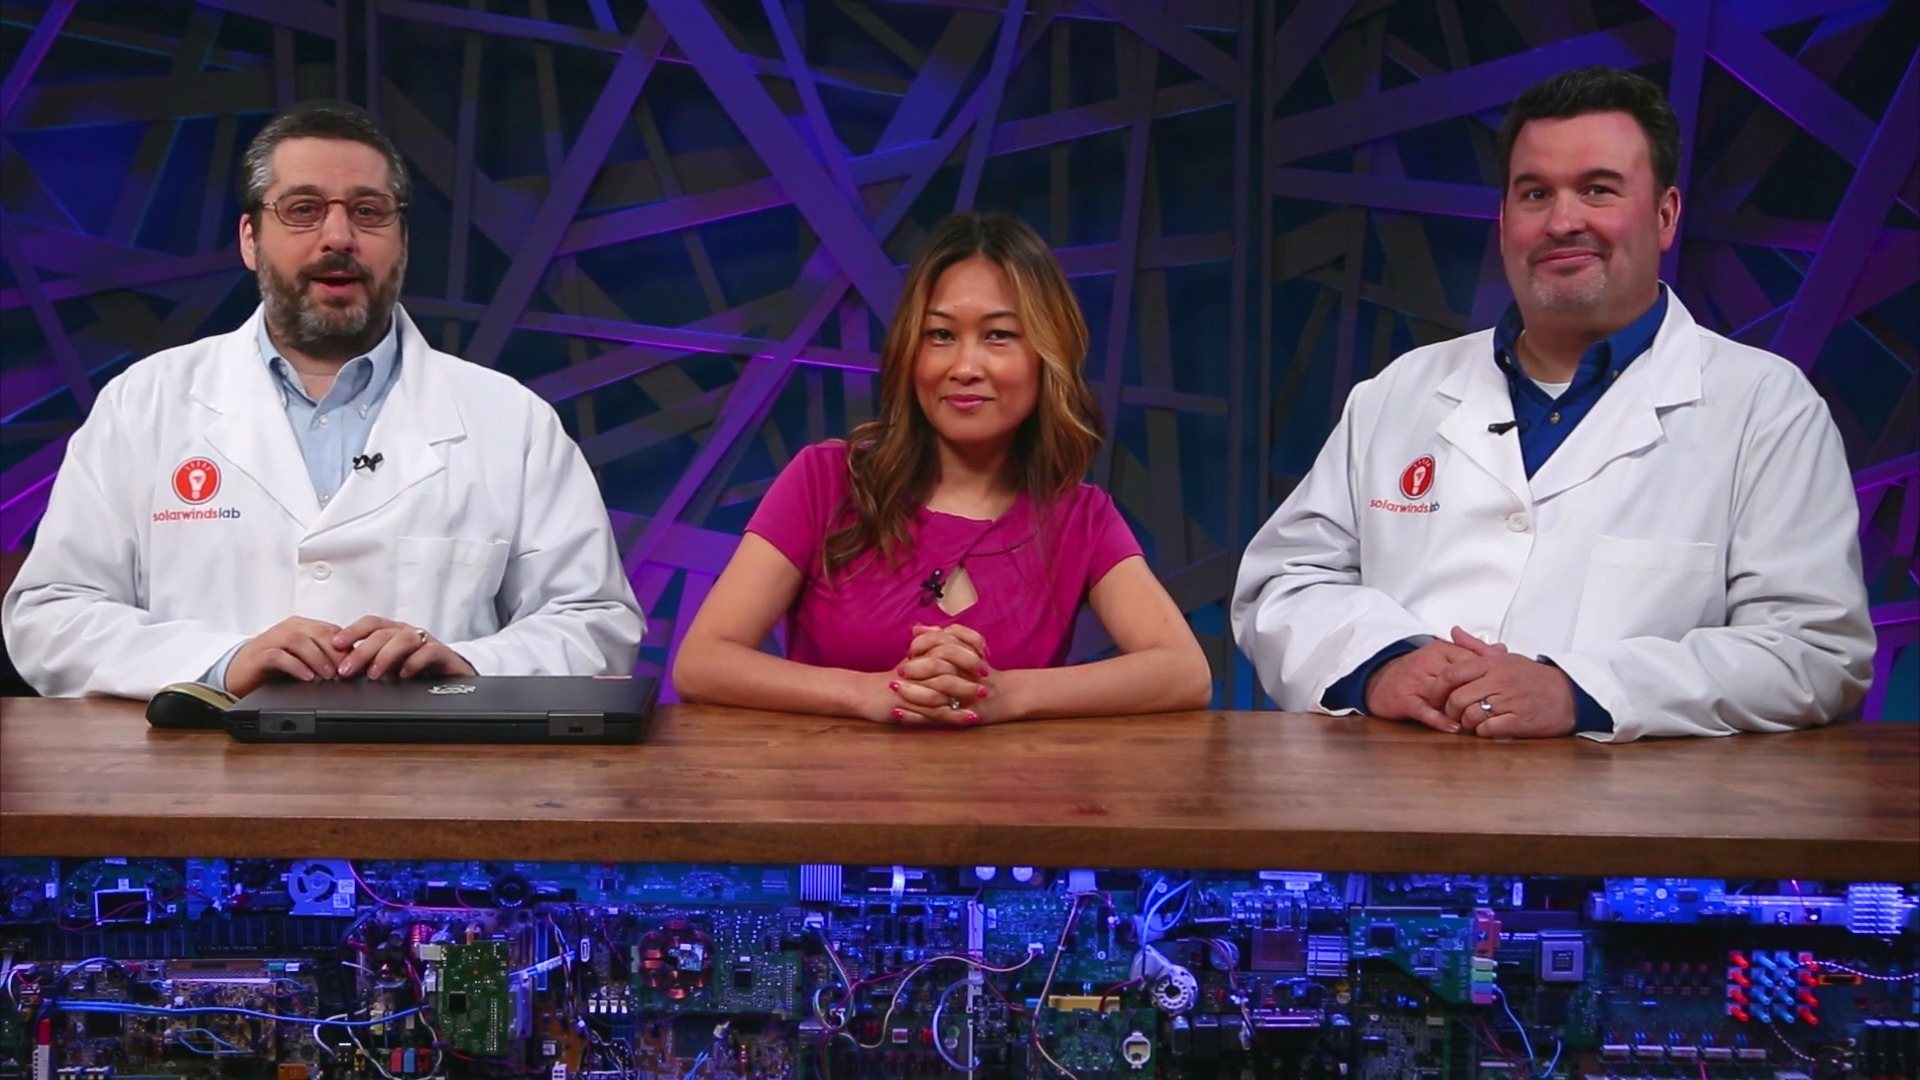 SolarWinds Lab #32: Two Geeks and a Goddess